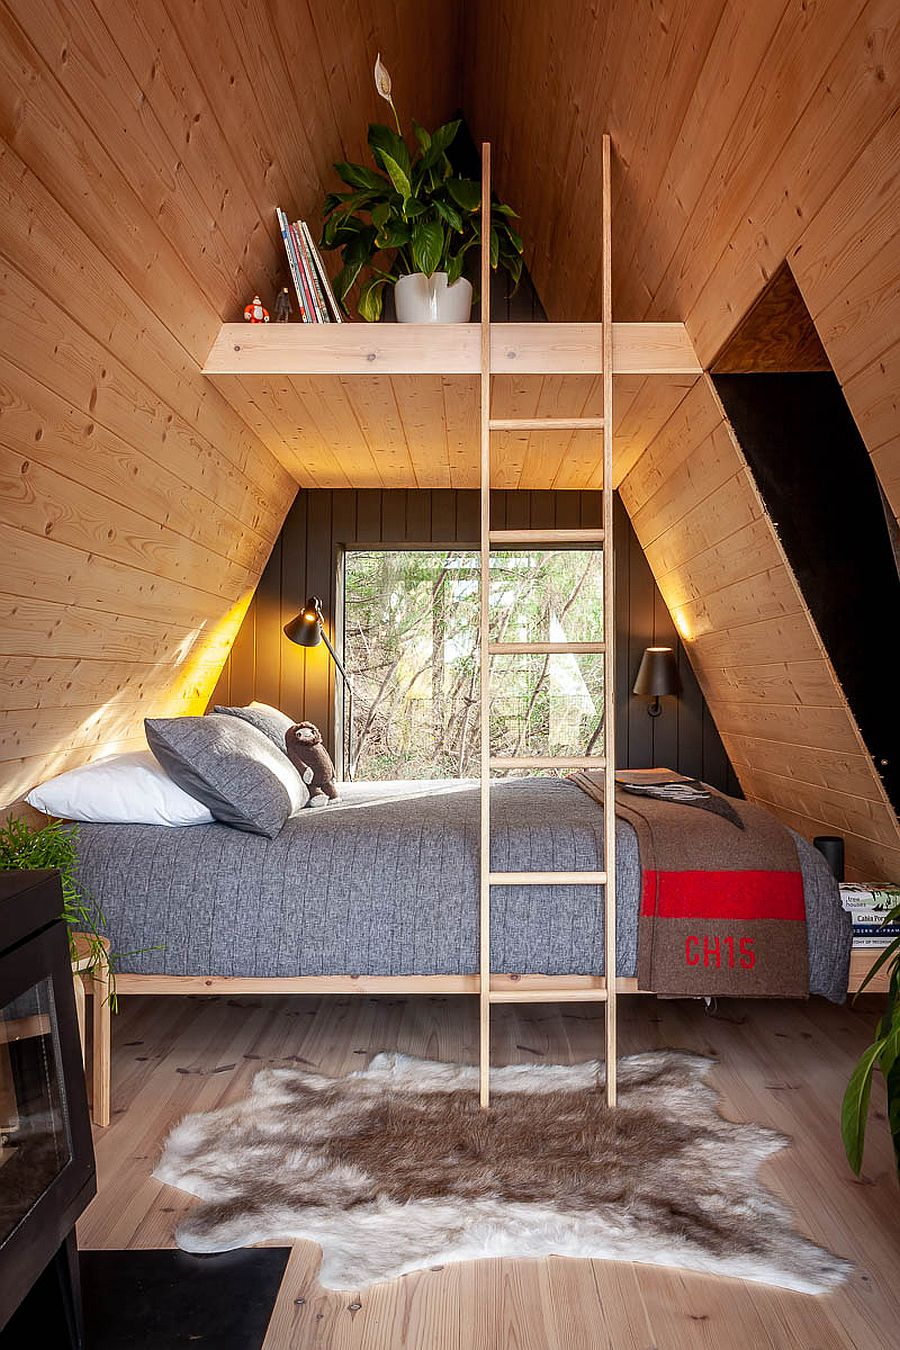 Decorating the interior of treehouse with modern, eco-friendly design